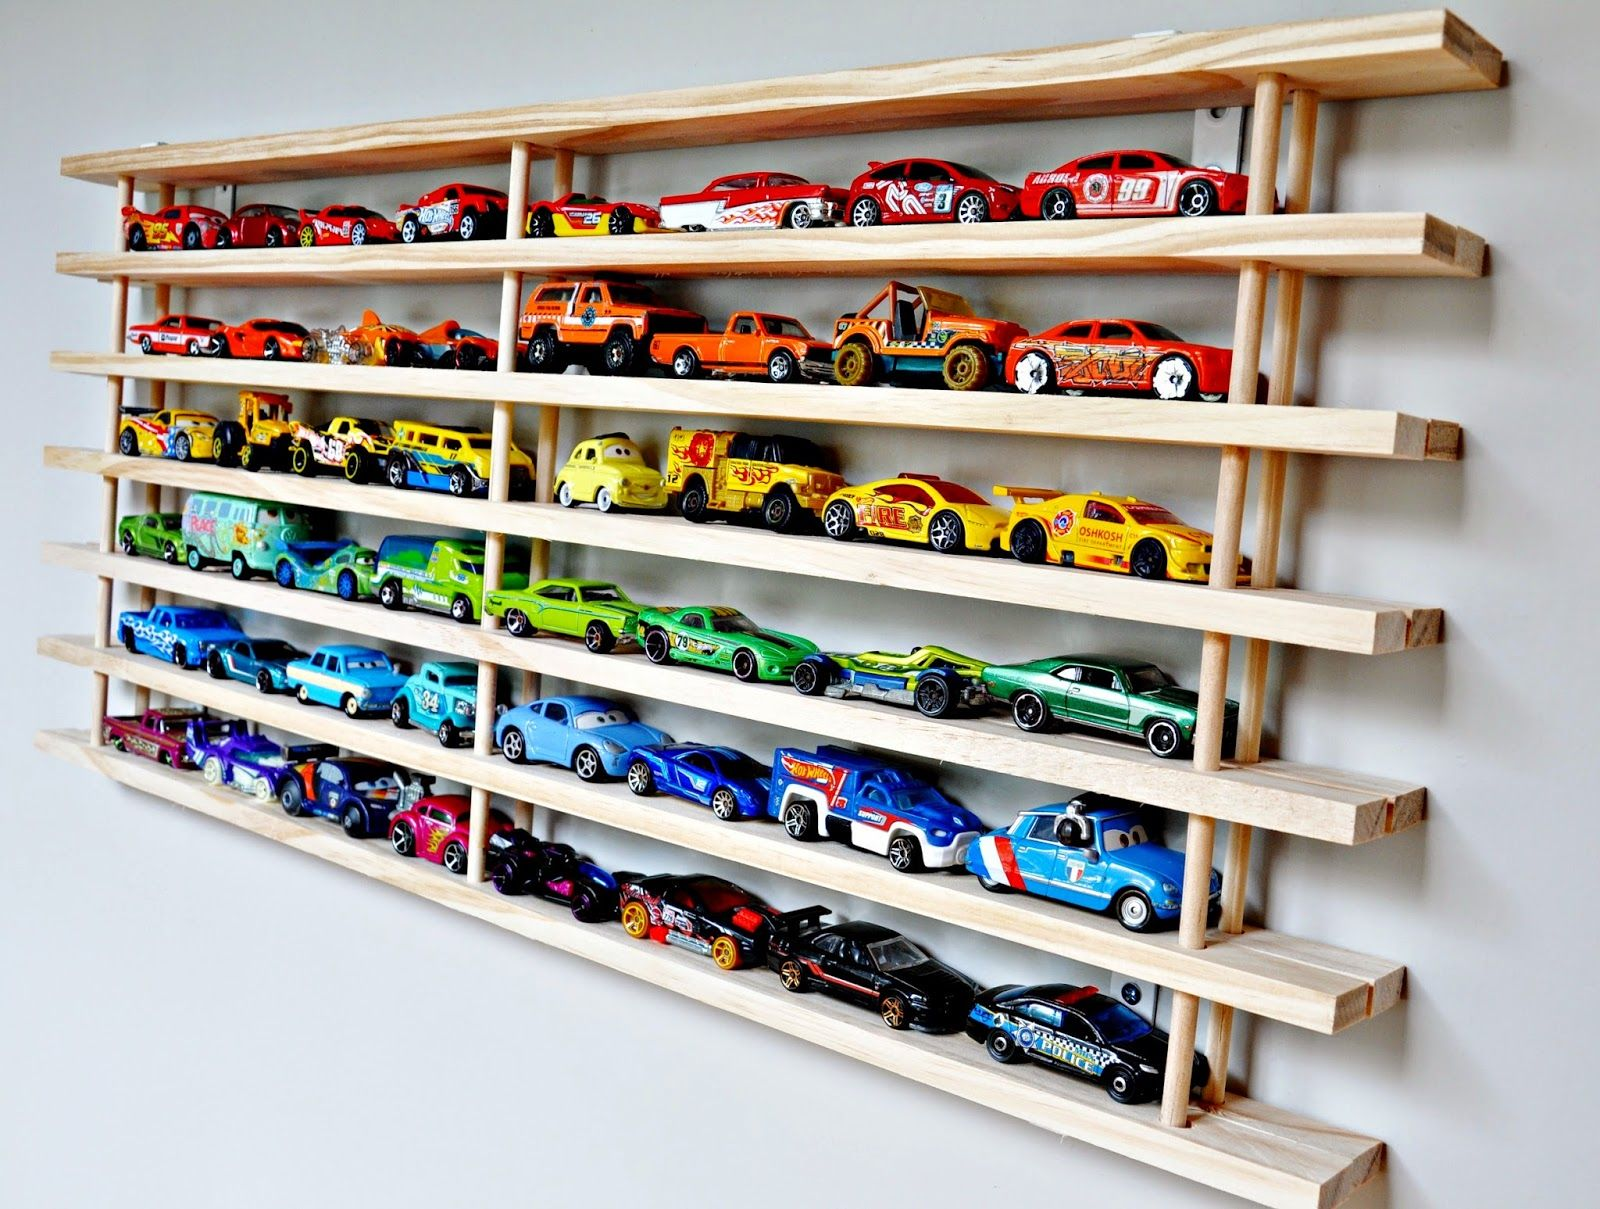 10 Genius Toy Storage Ideas Every Home Could Use